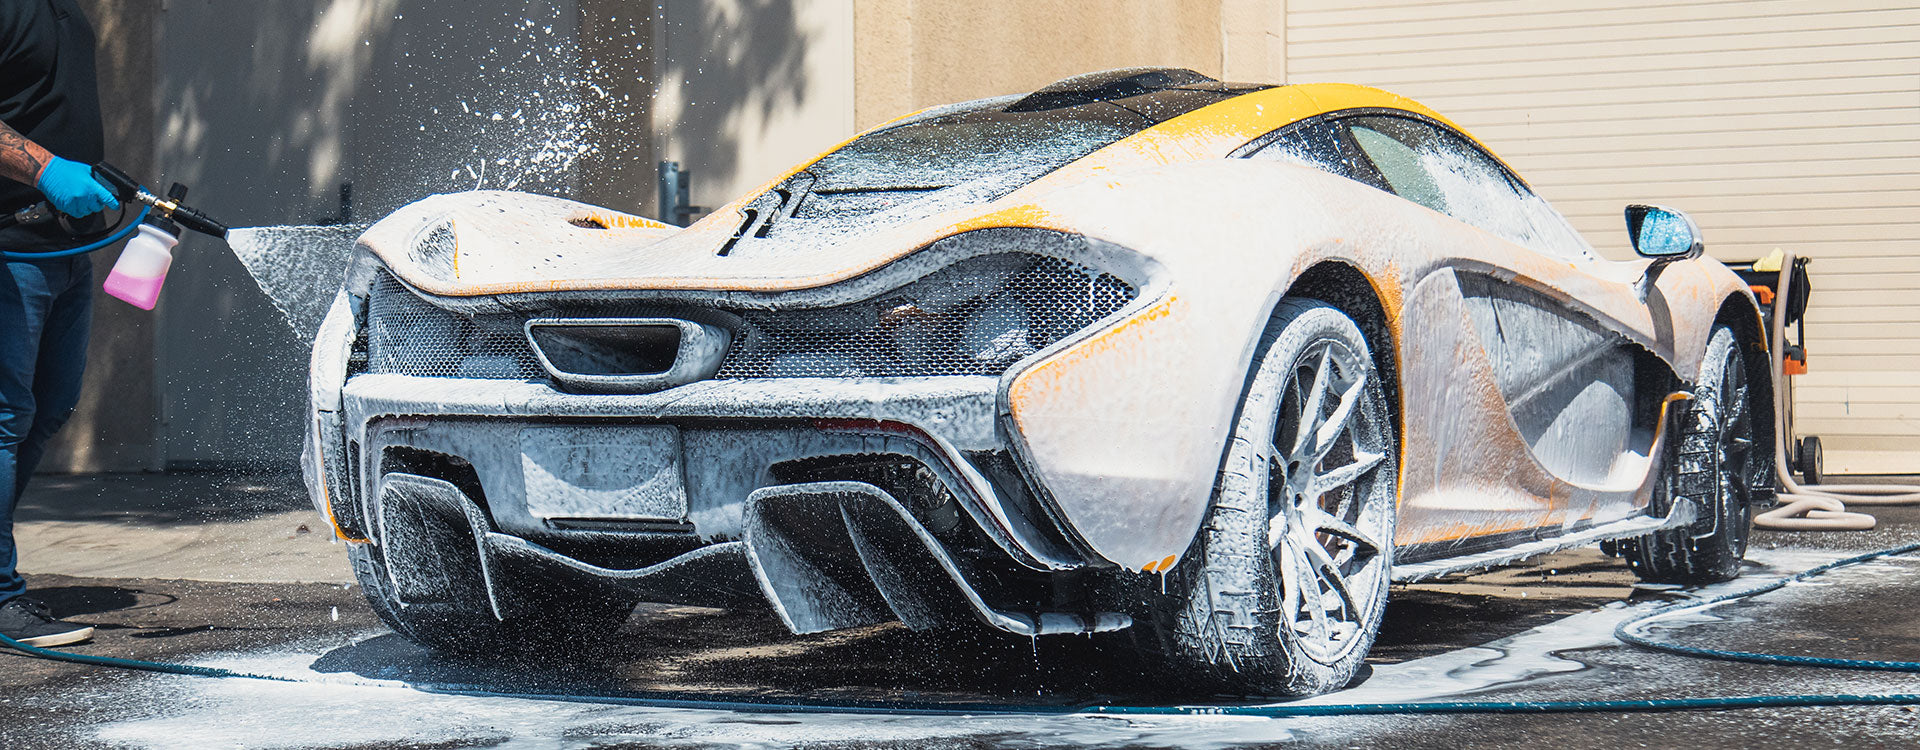 Wash & Wax Car Wash Shampoo from Jay Leno's Garage | Foam McLaren P1